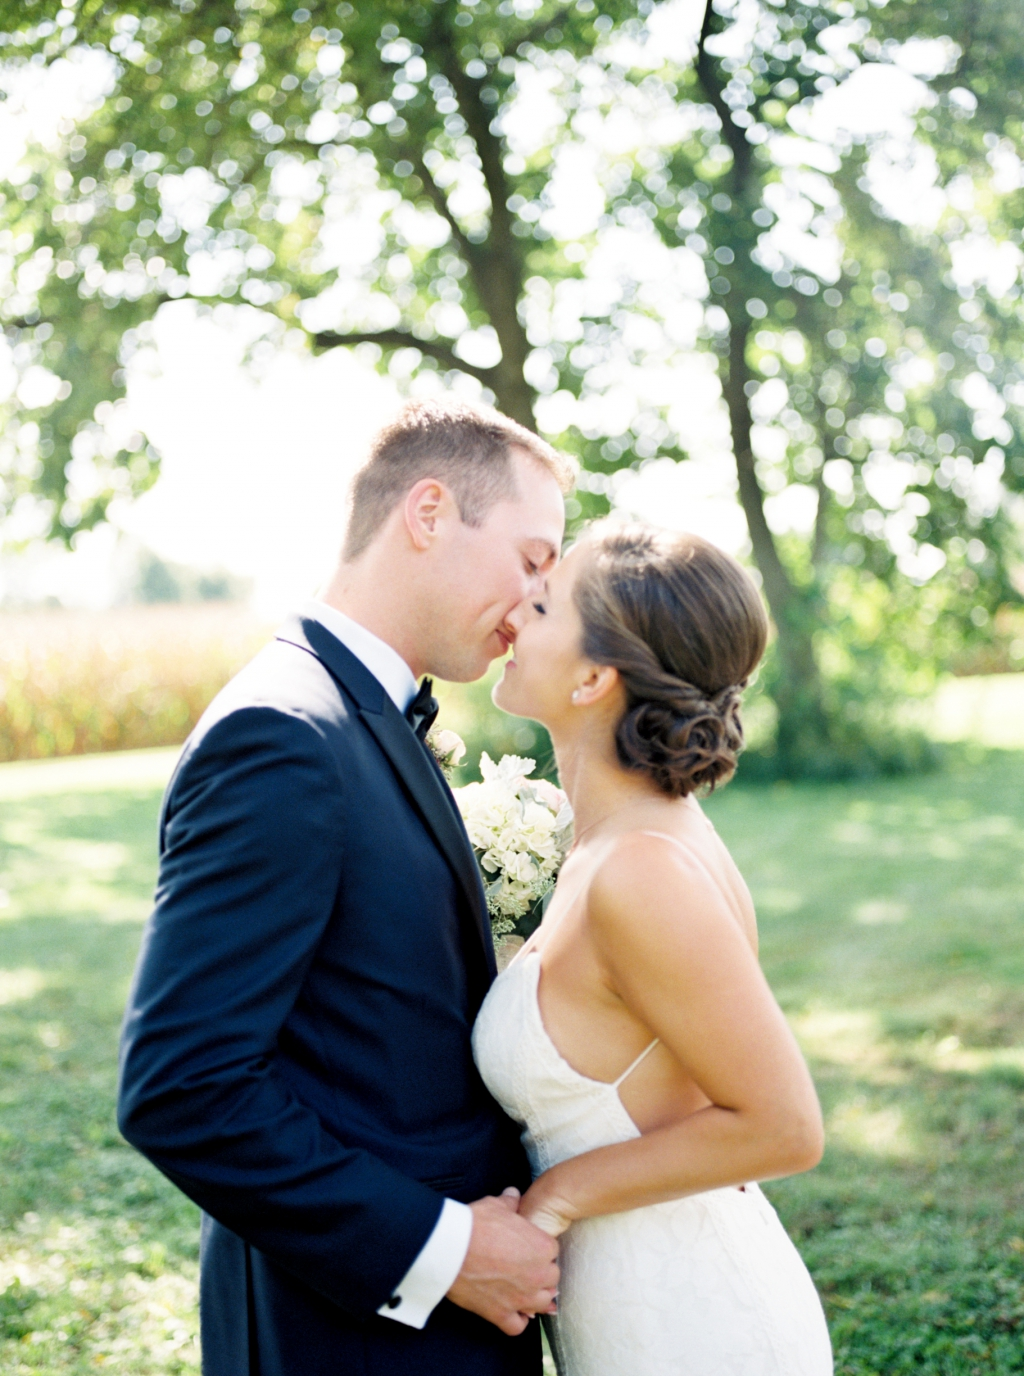 haley-richter-photography-buena-vista-confrence-center-wedding-summer-205